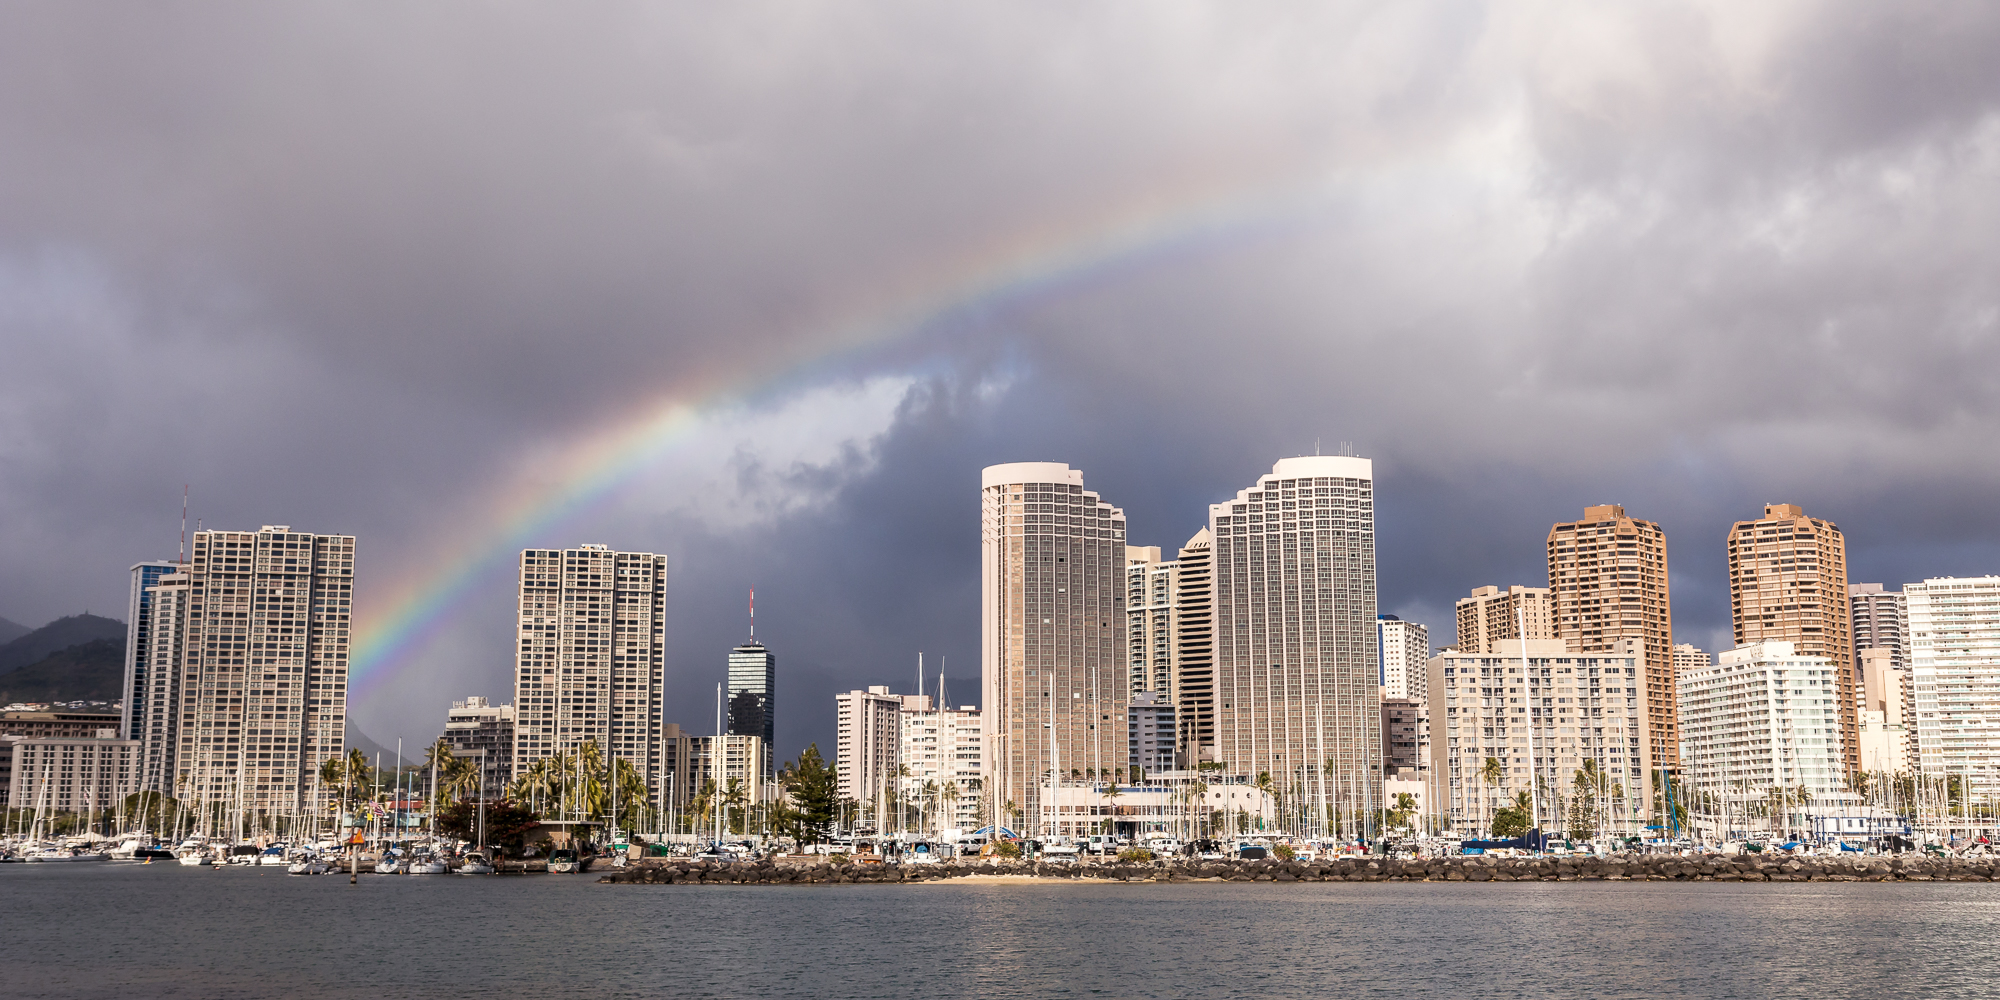 A rainbow arches over Waikiki during the day.